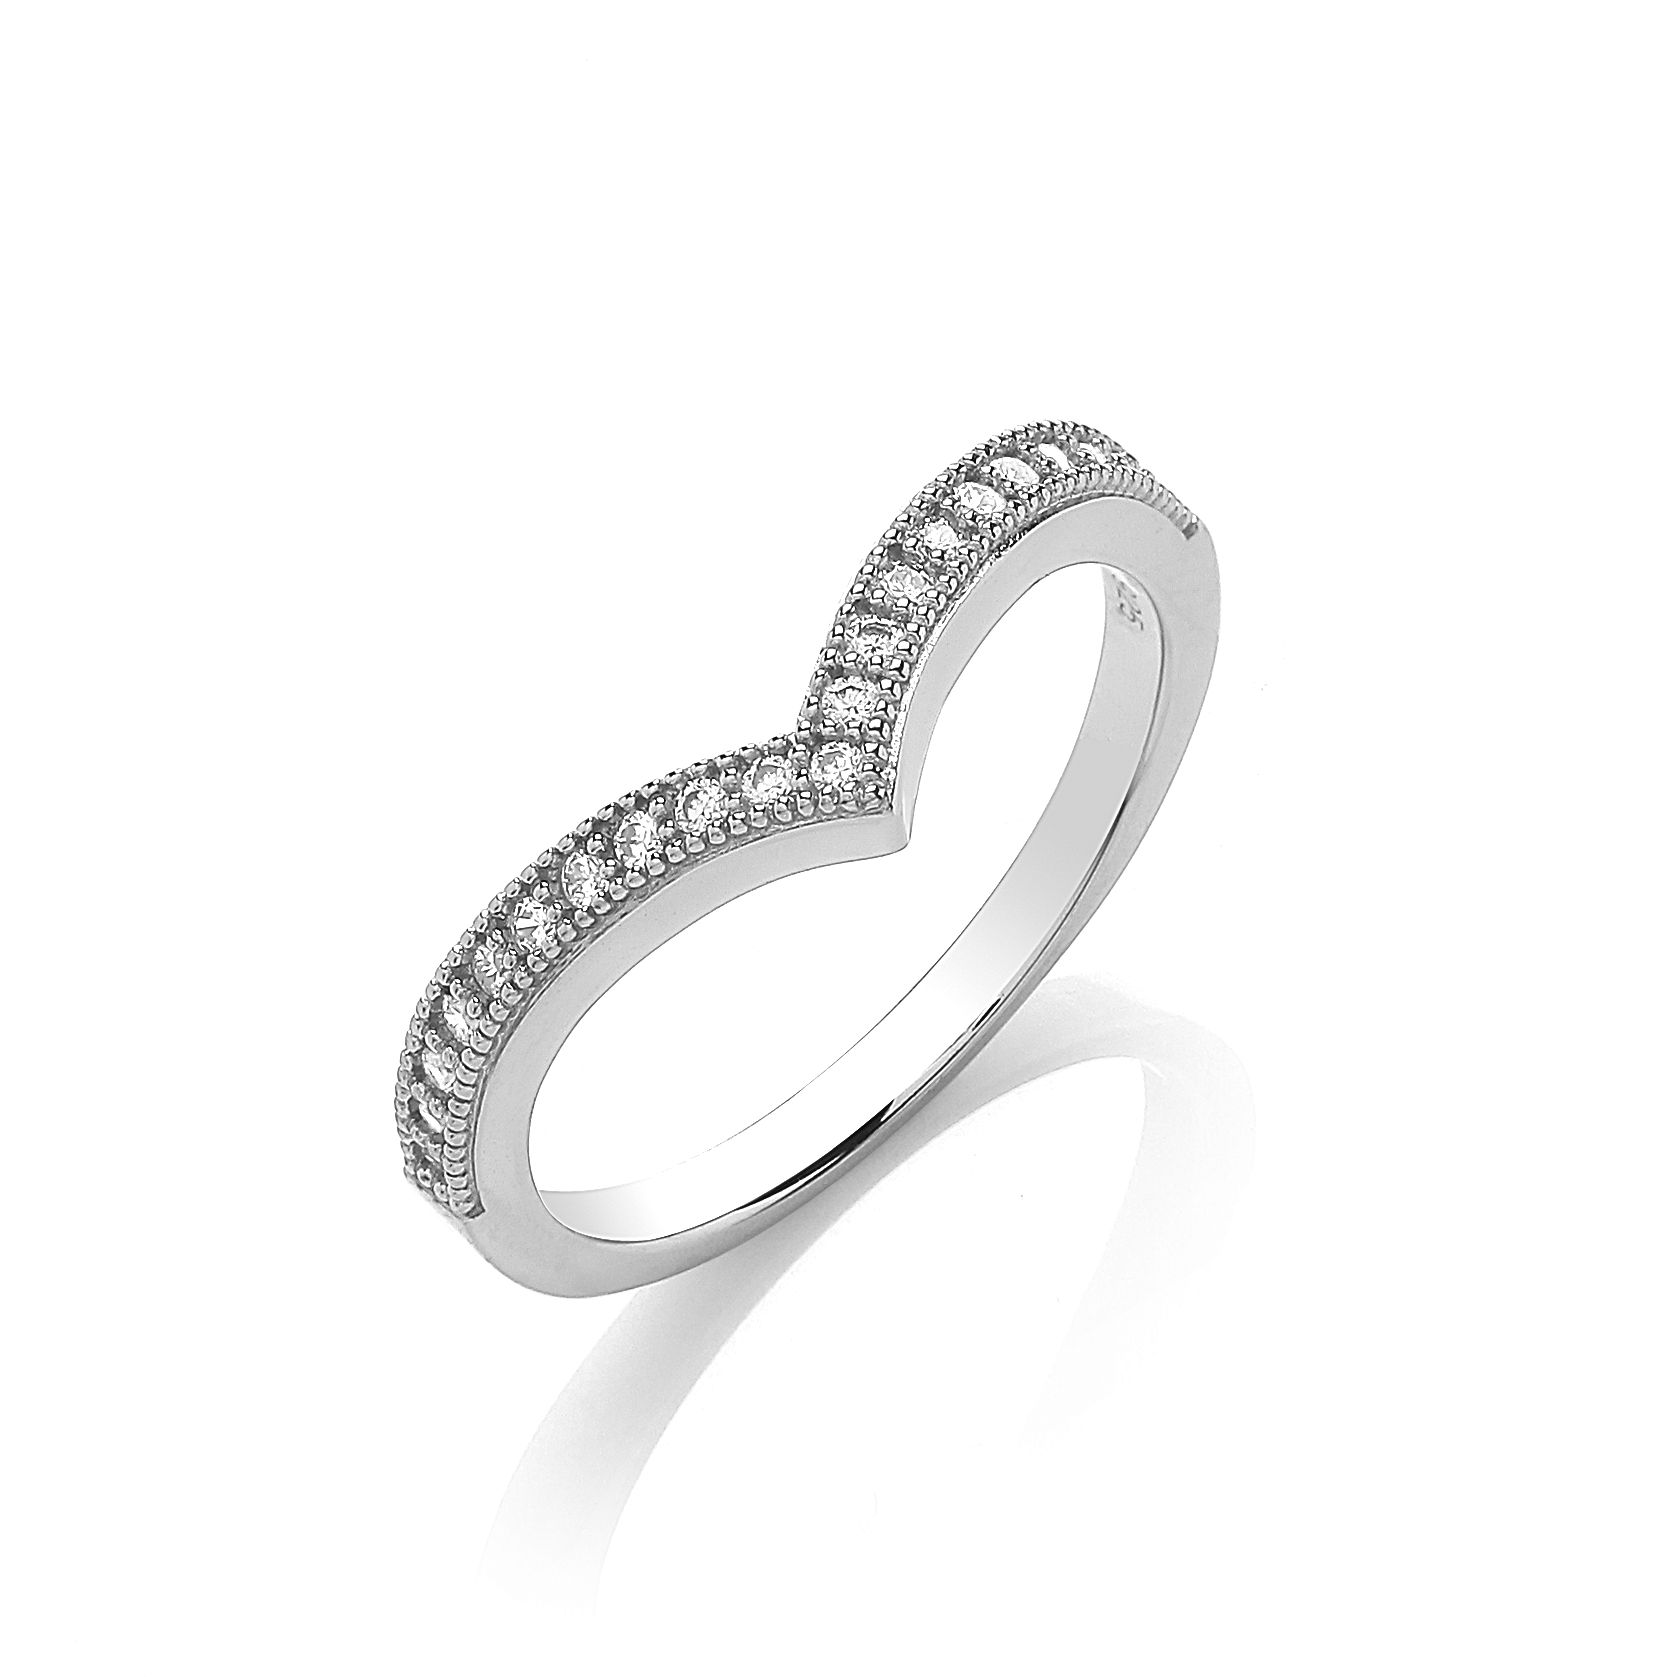 Rhodium wishbone ring